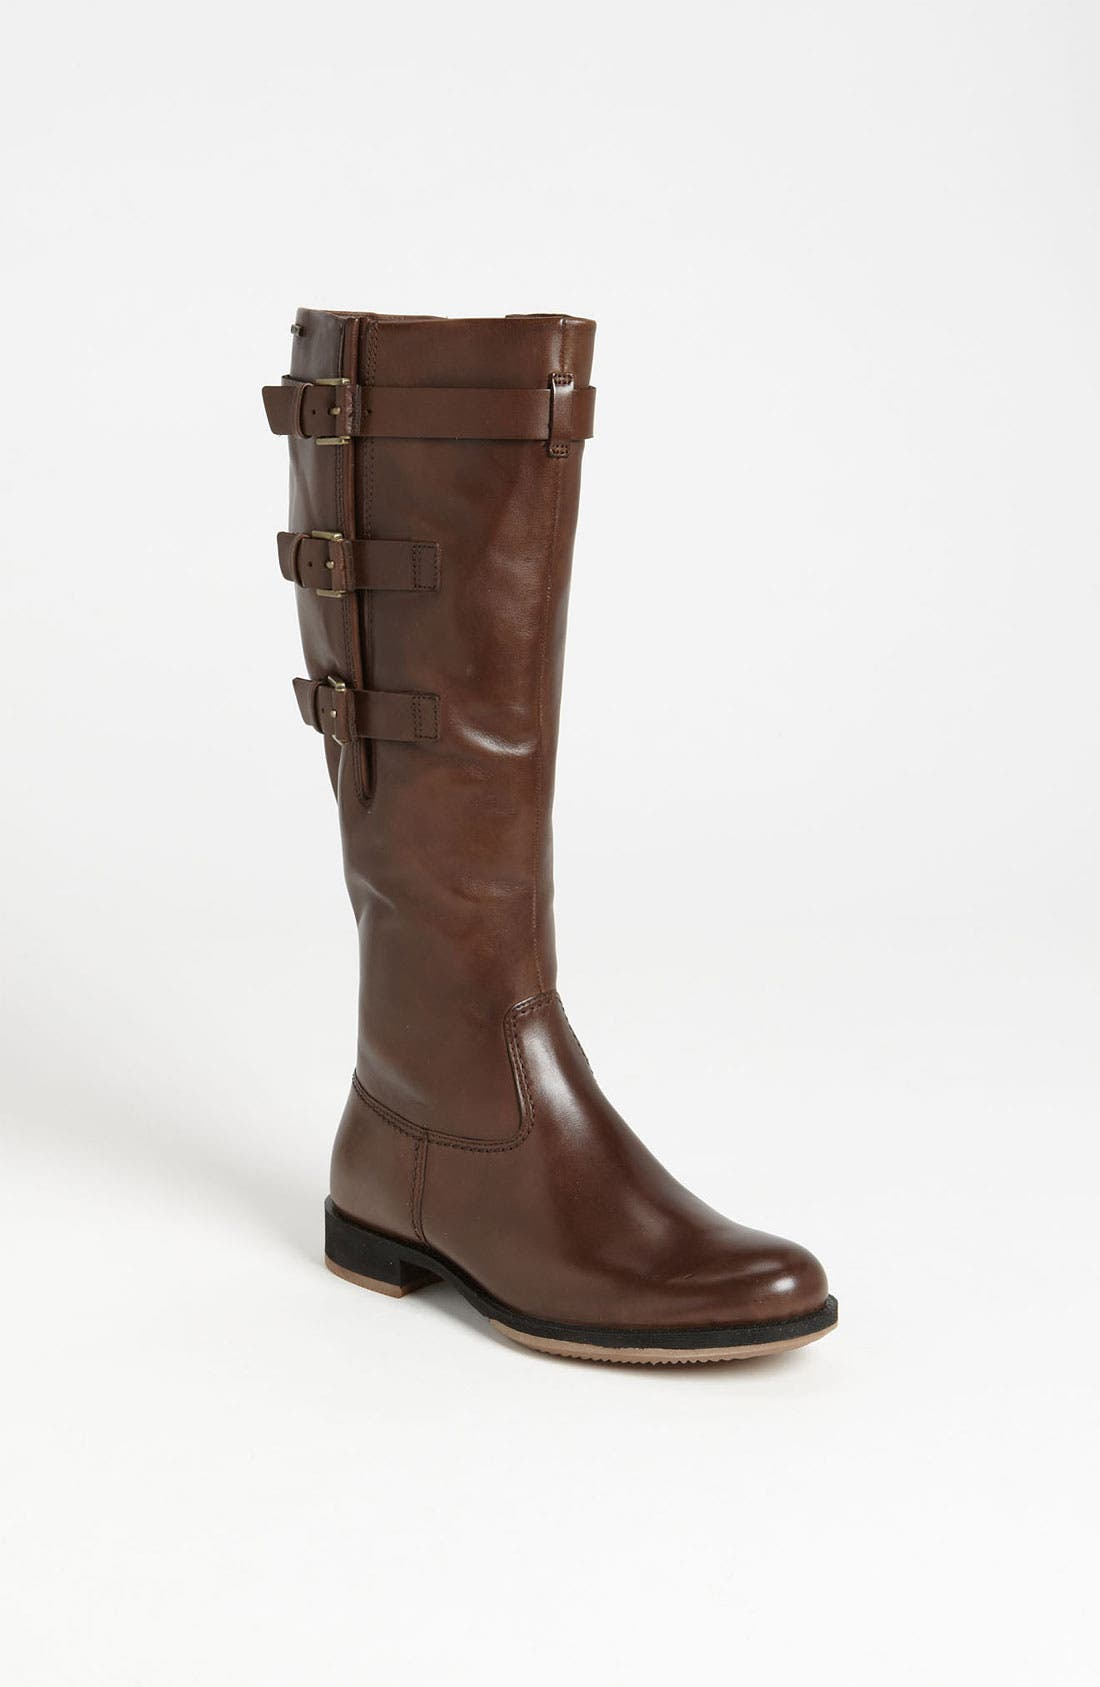 Alternate Image 1 Selected - ECCO 'Saunter GTX Tall 3 Buckle' Boot